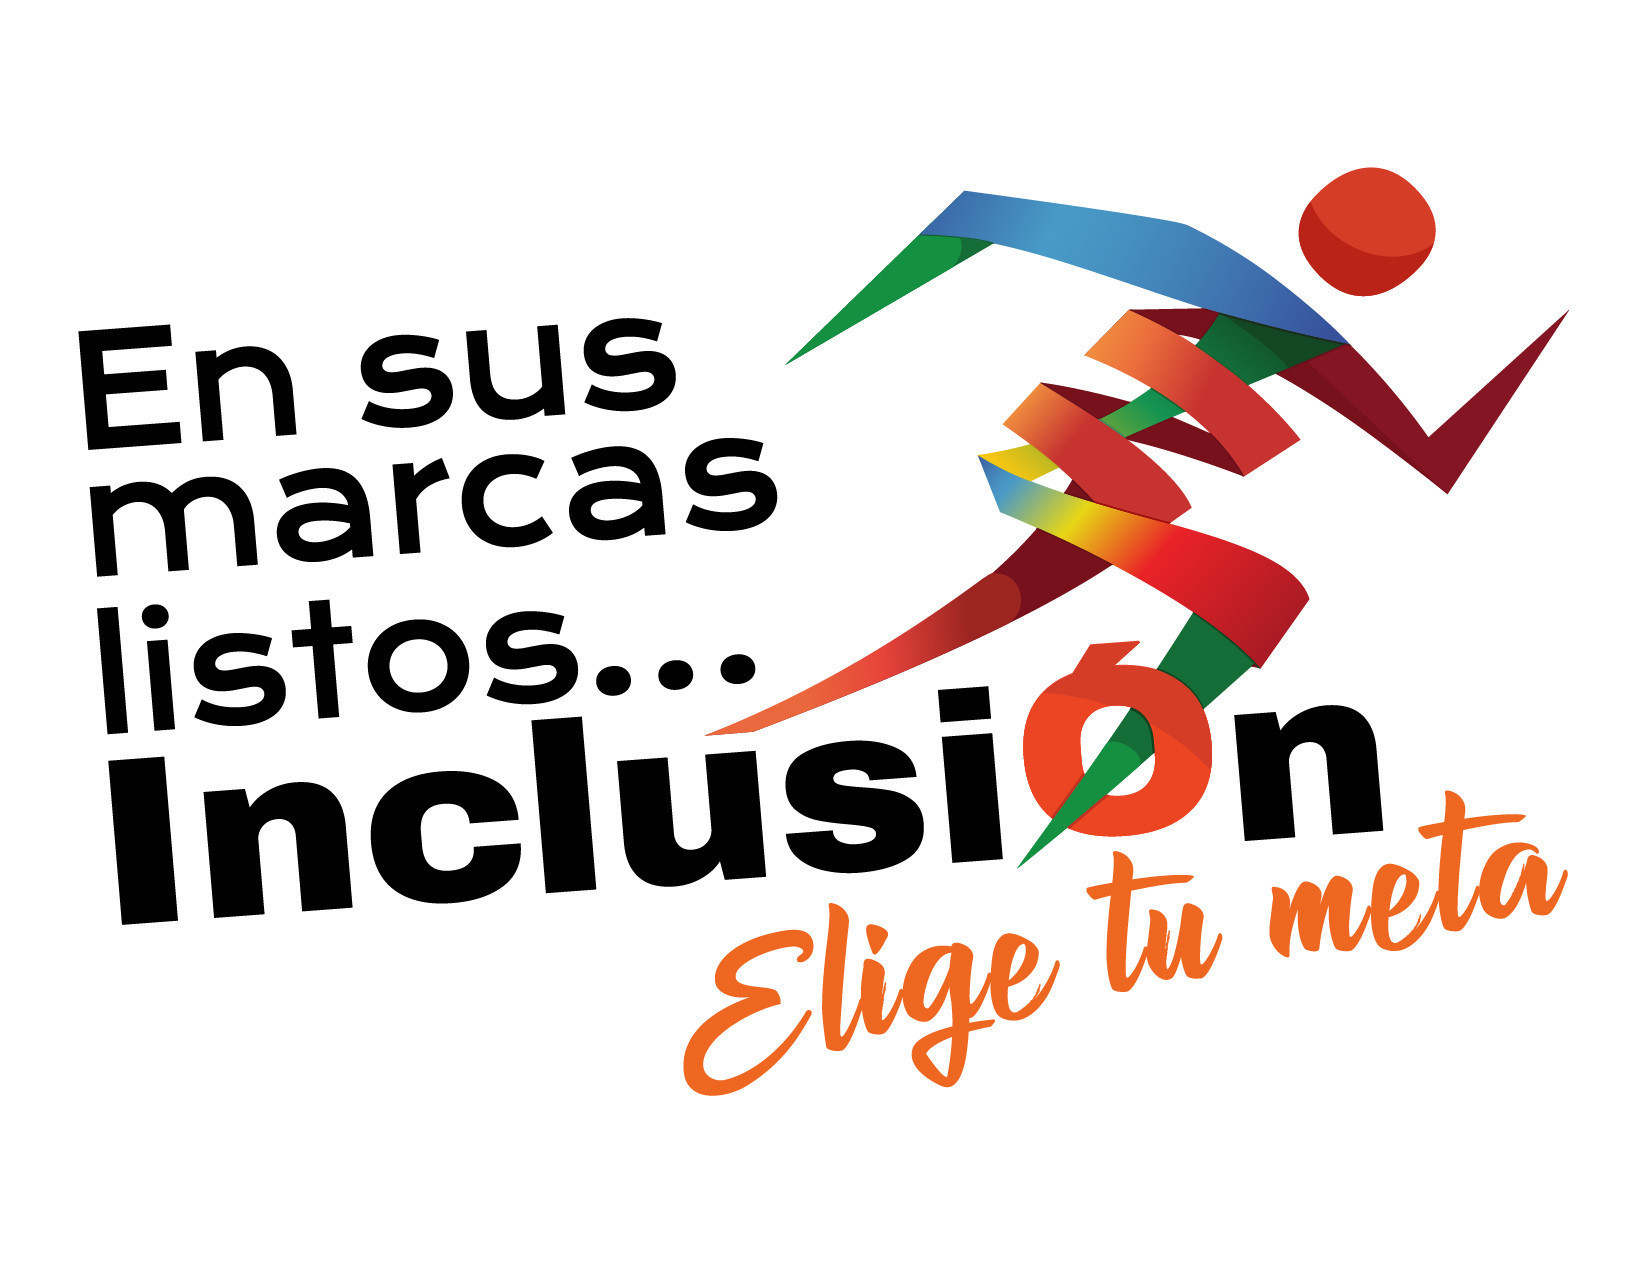 The latest project is part of ongoing work to use Para-sport as a tool for social inclusion ©Agitos Foundation